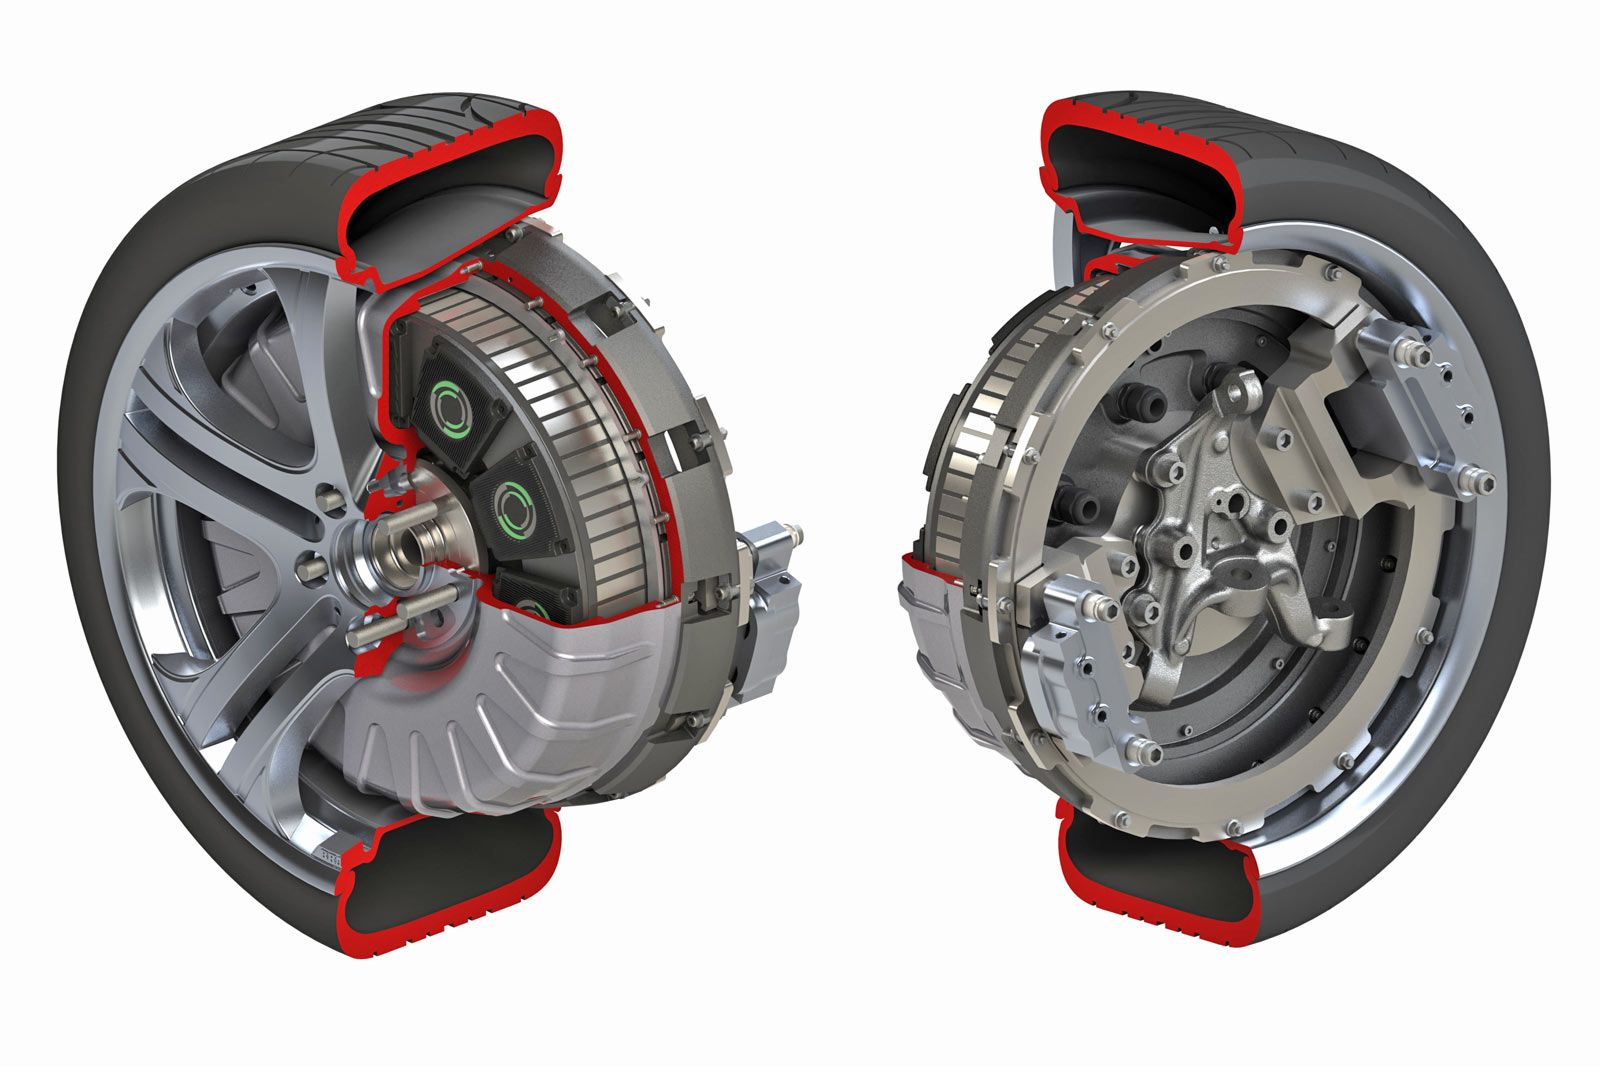 Another In Wheel Electric Motor Maybe One Day Suspension Engineers Go Back Gt Gallery For Brushless Diagram Will Save The And Figure Out How To Deal With Huge Increase Unsprung Weight